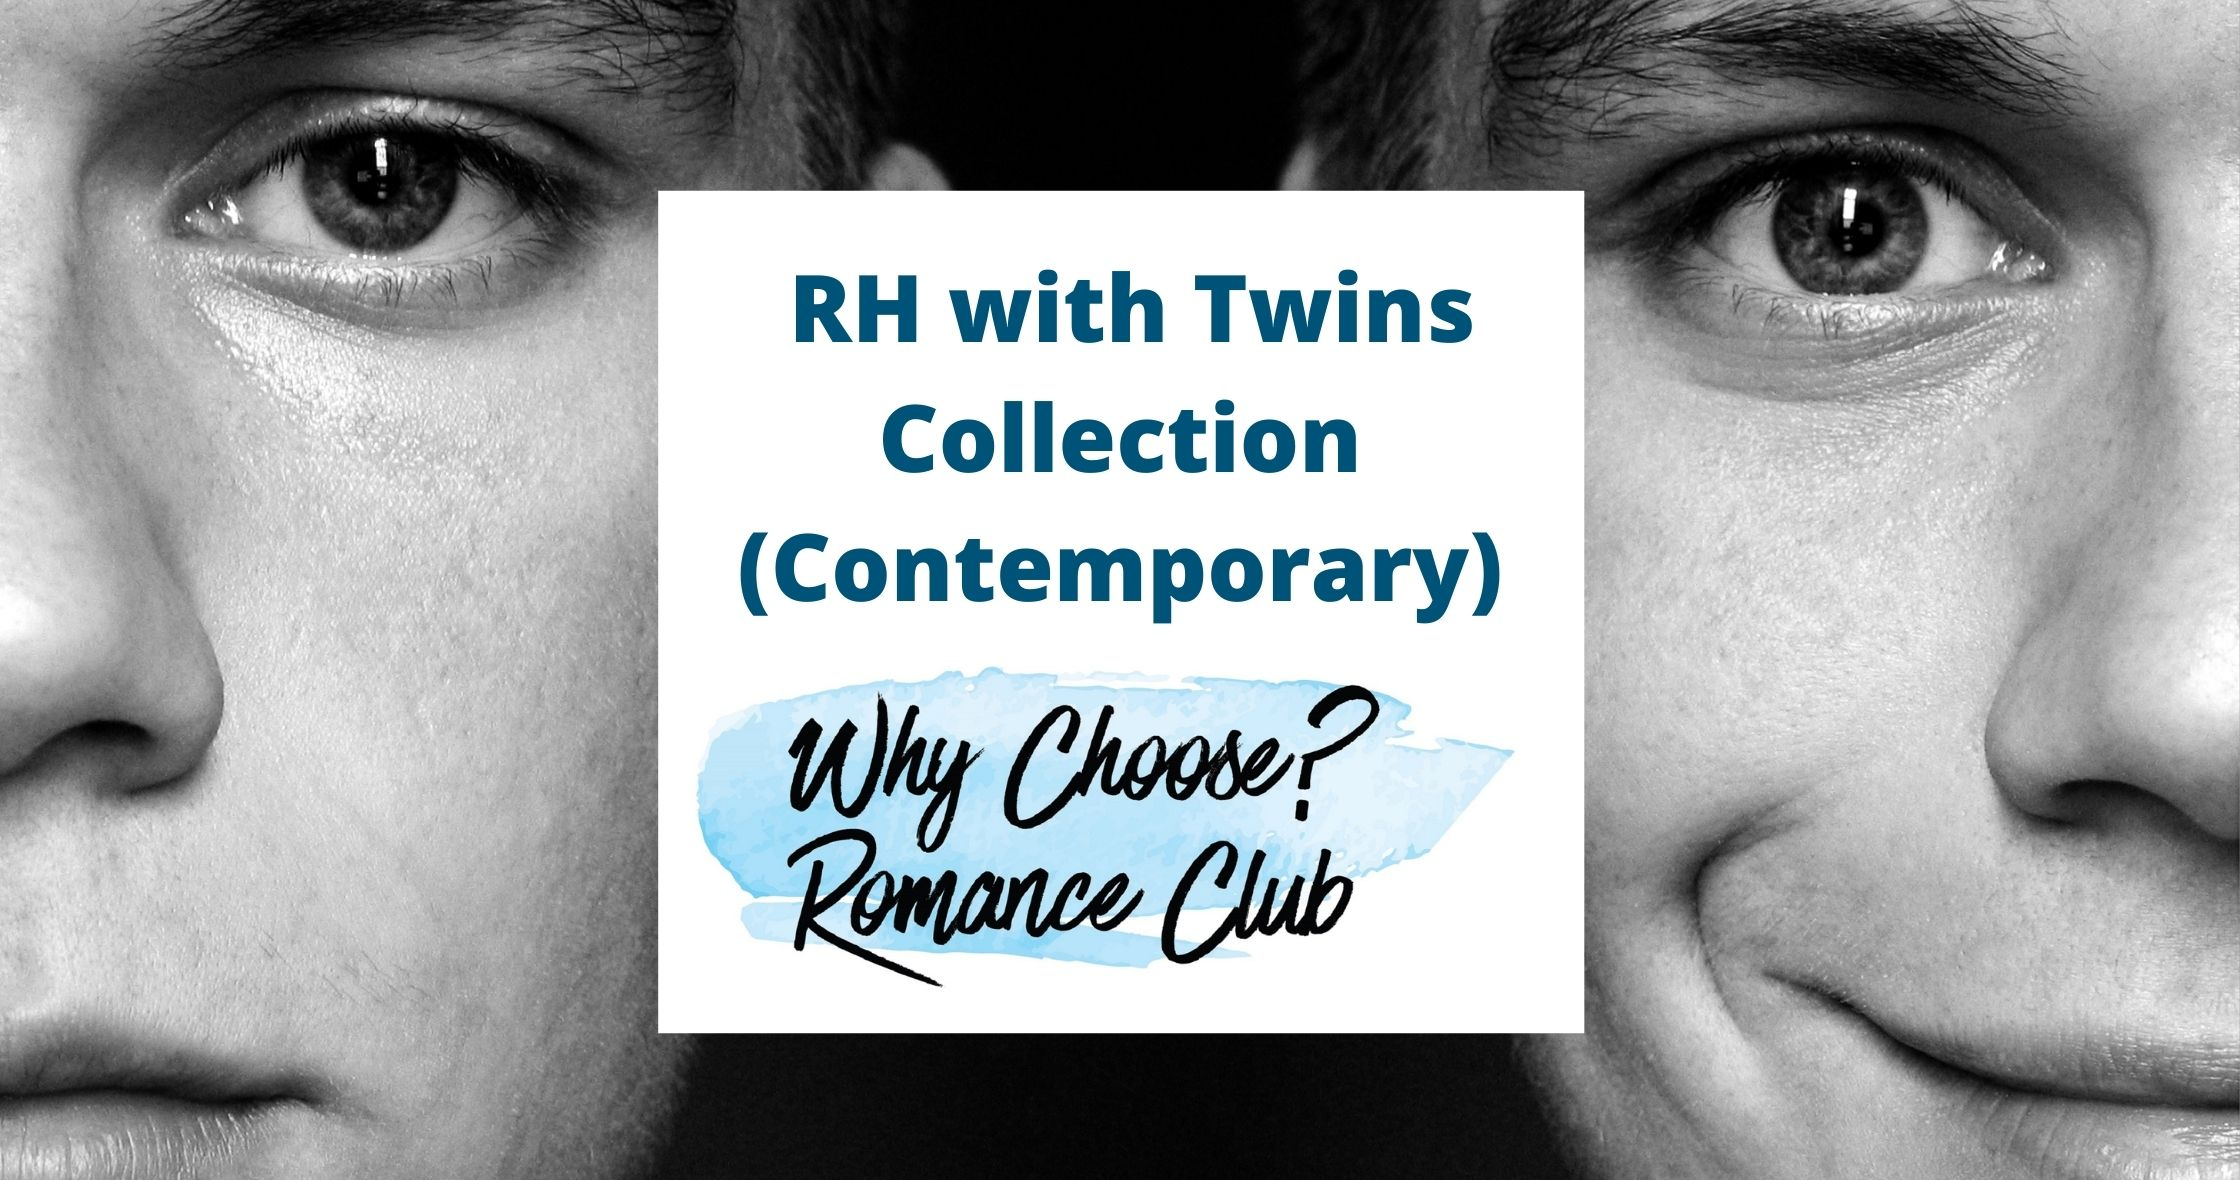 two twins (contemporary romance book collection)